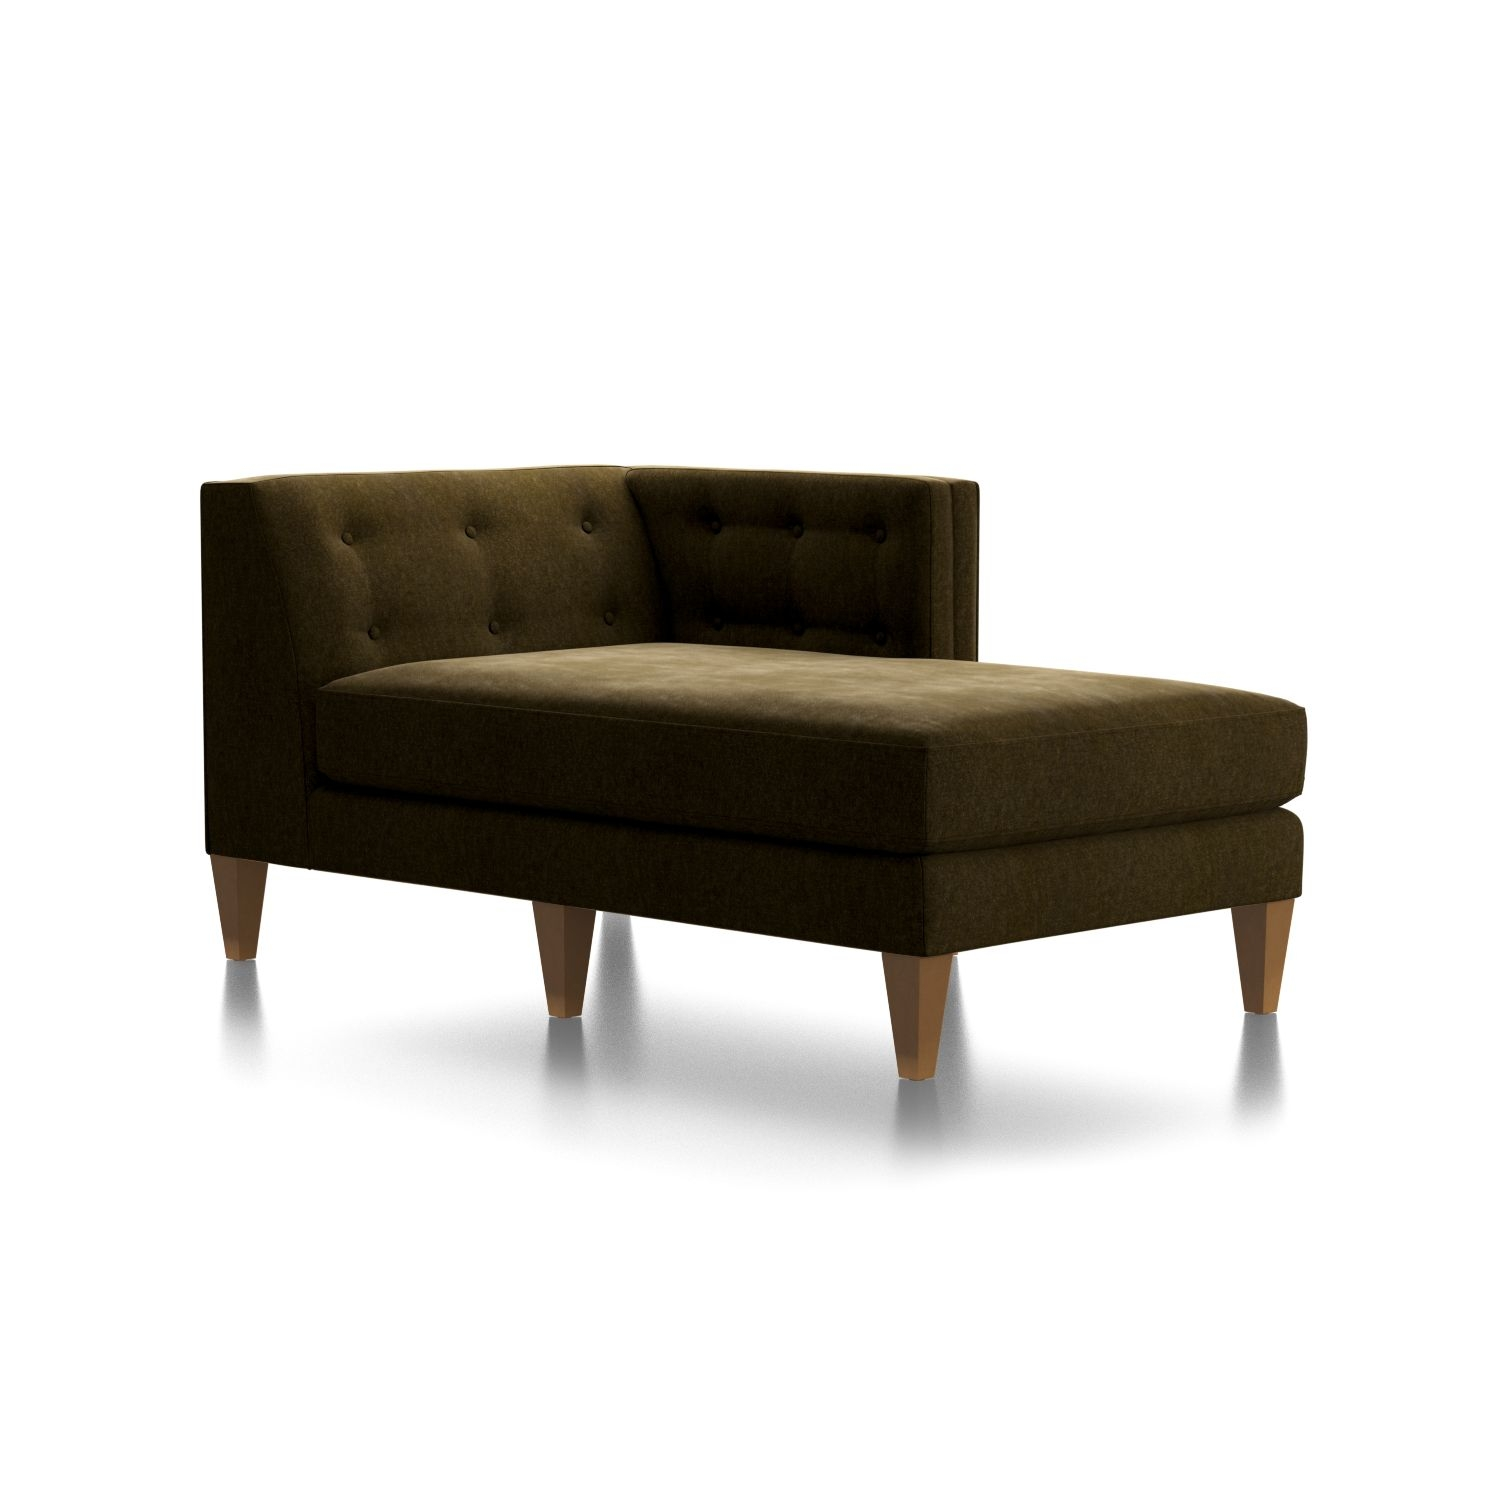 Aidan Velvet Right Arm Tufted Chaise + Reviews | Crate And Barrel With Regard To Aidan 4 Piece Sectionals (View 4 of 25)